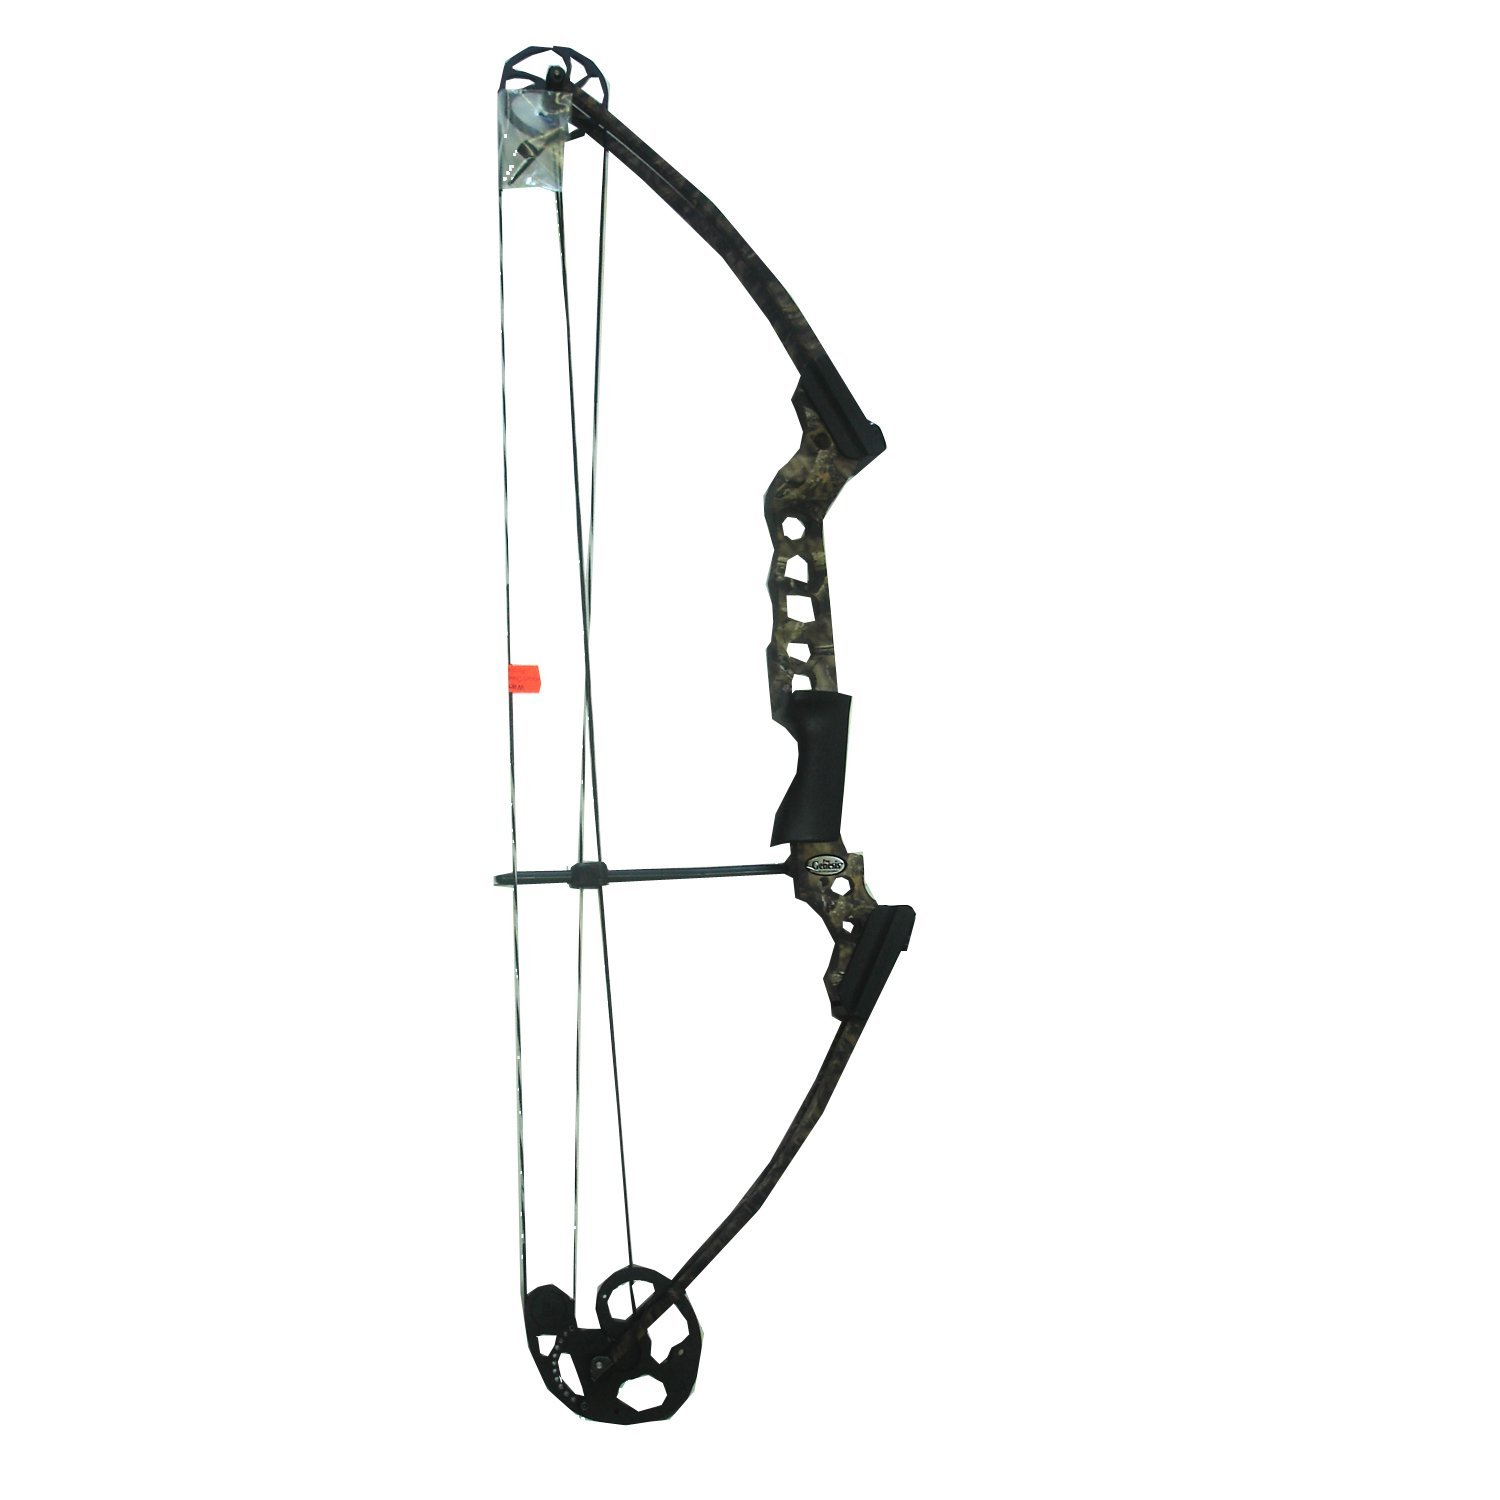 Compound bow real.jpg